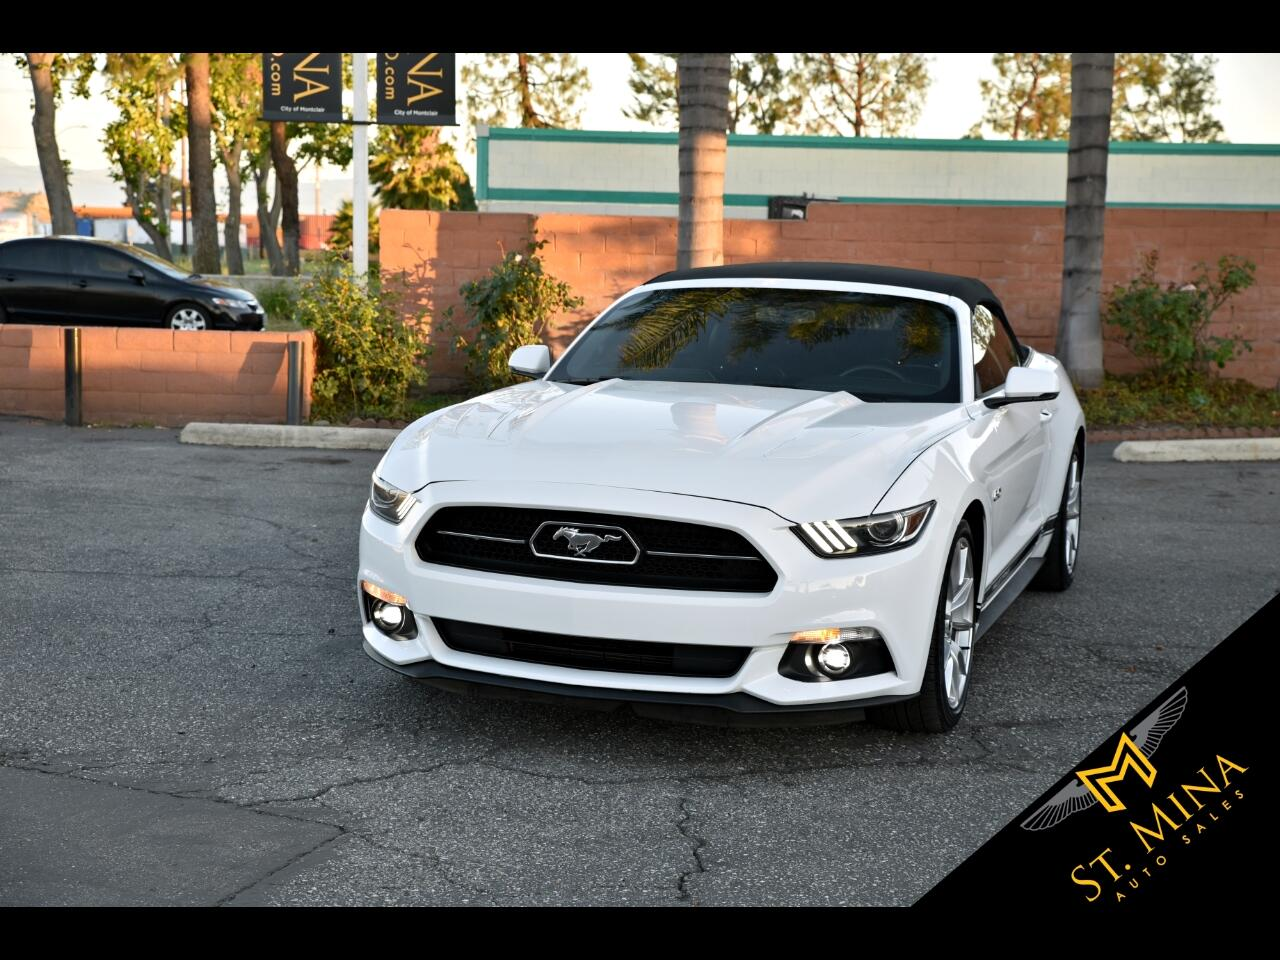 2015 Ford Mustang GT Premium Convertible 50TH Anniversary